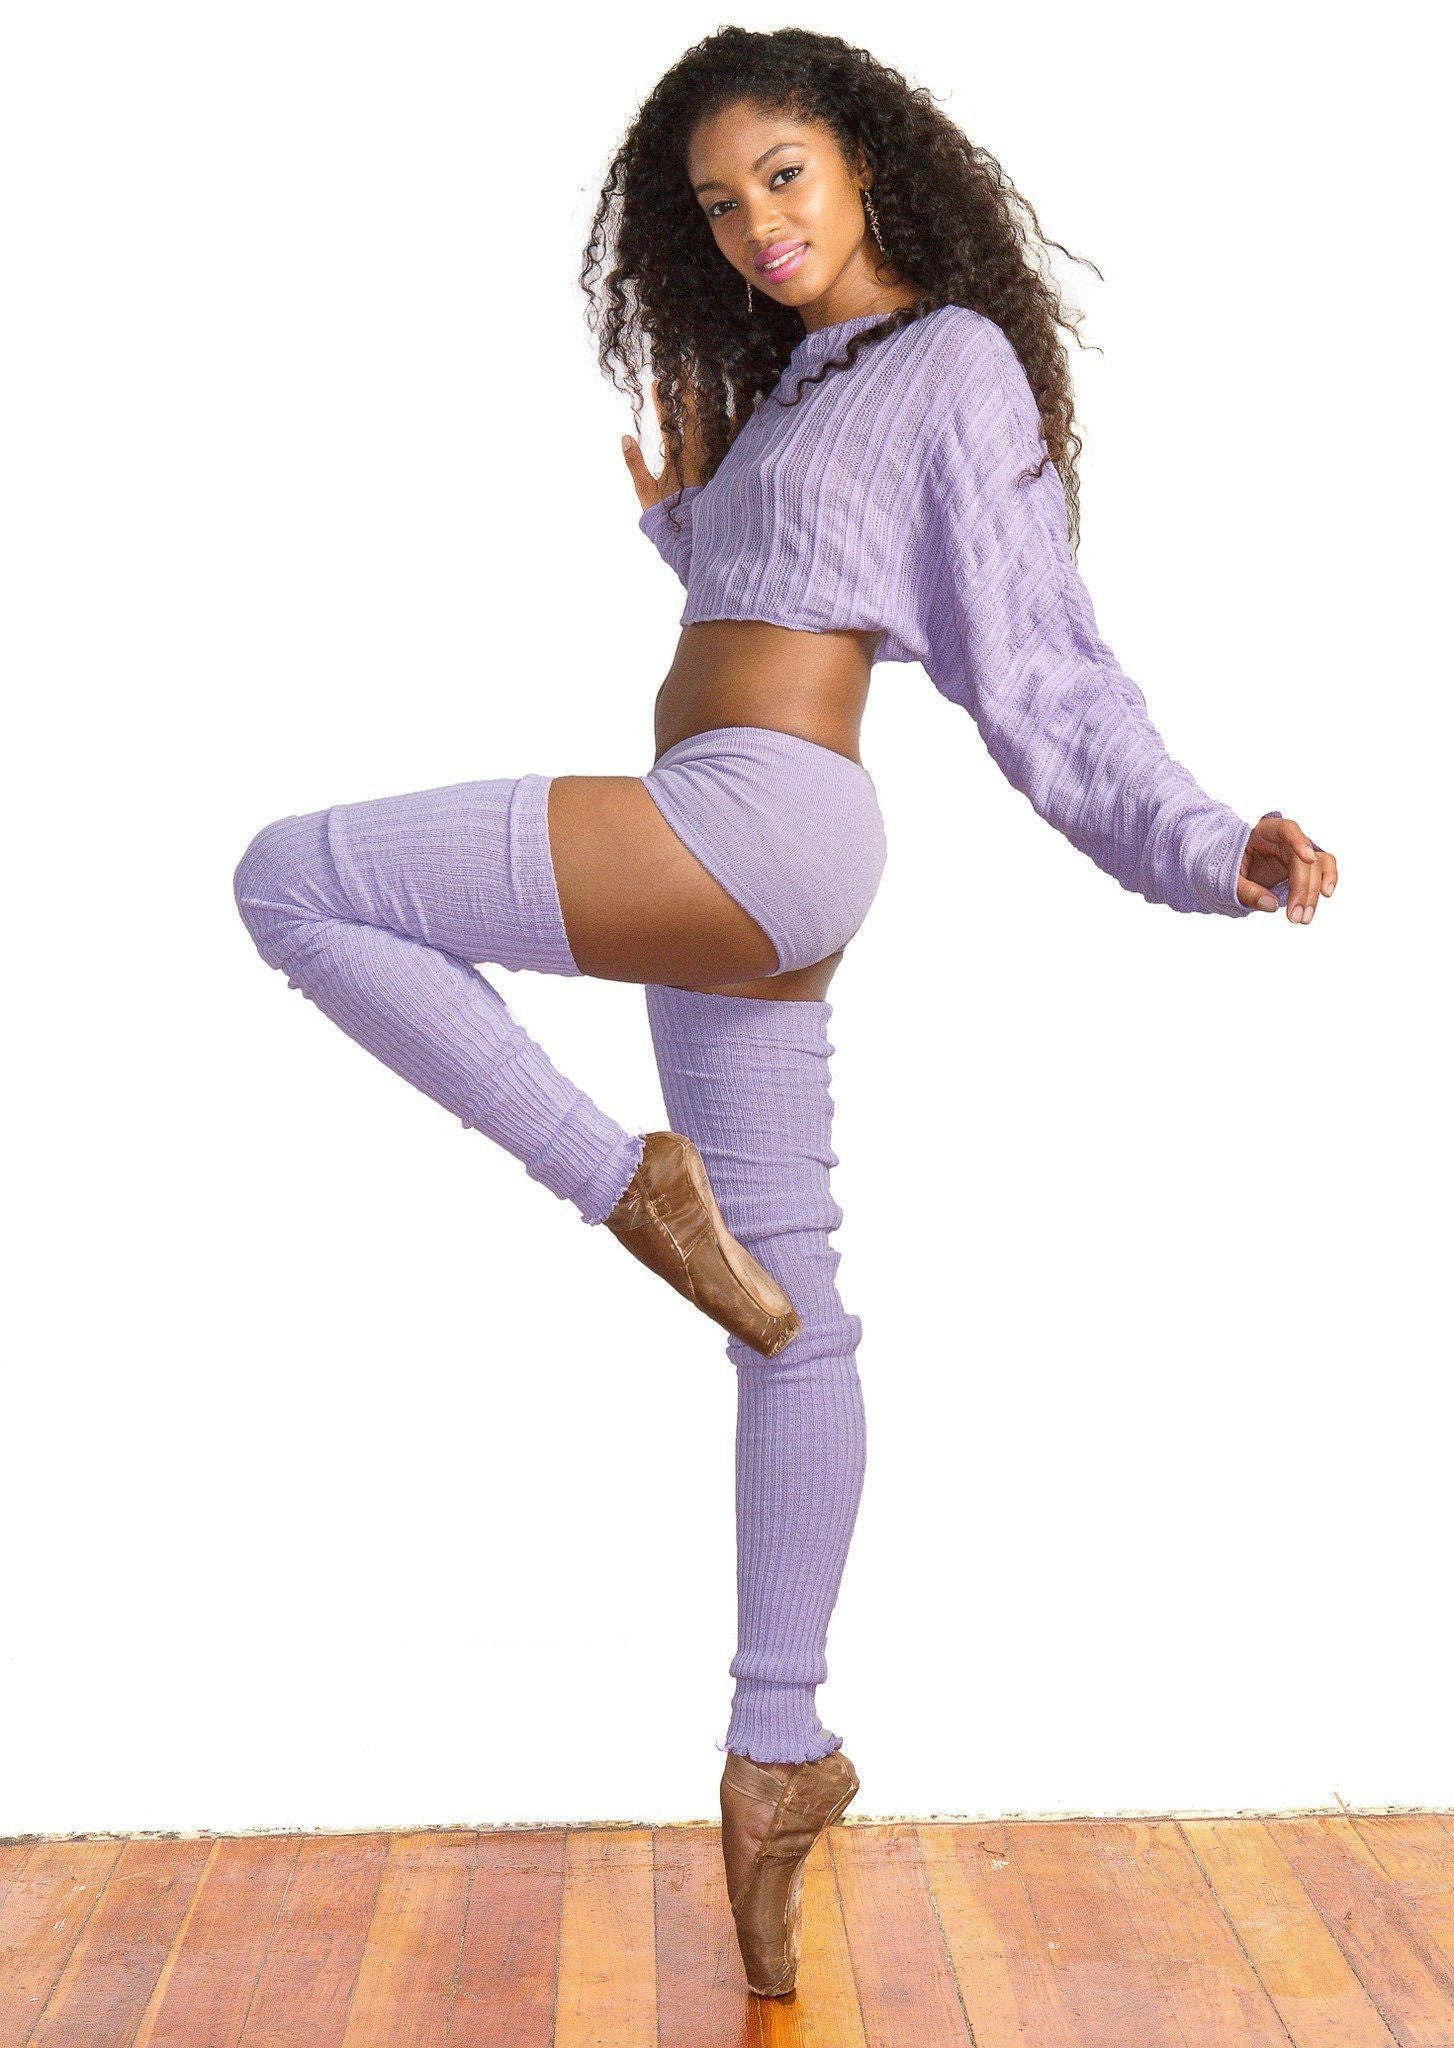 String Tie Wrap Top / Knit Low Rise Tights / Dancewear / Ballet / Dance / Loungewear / Made In USA